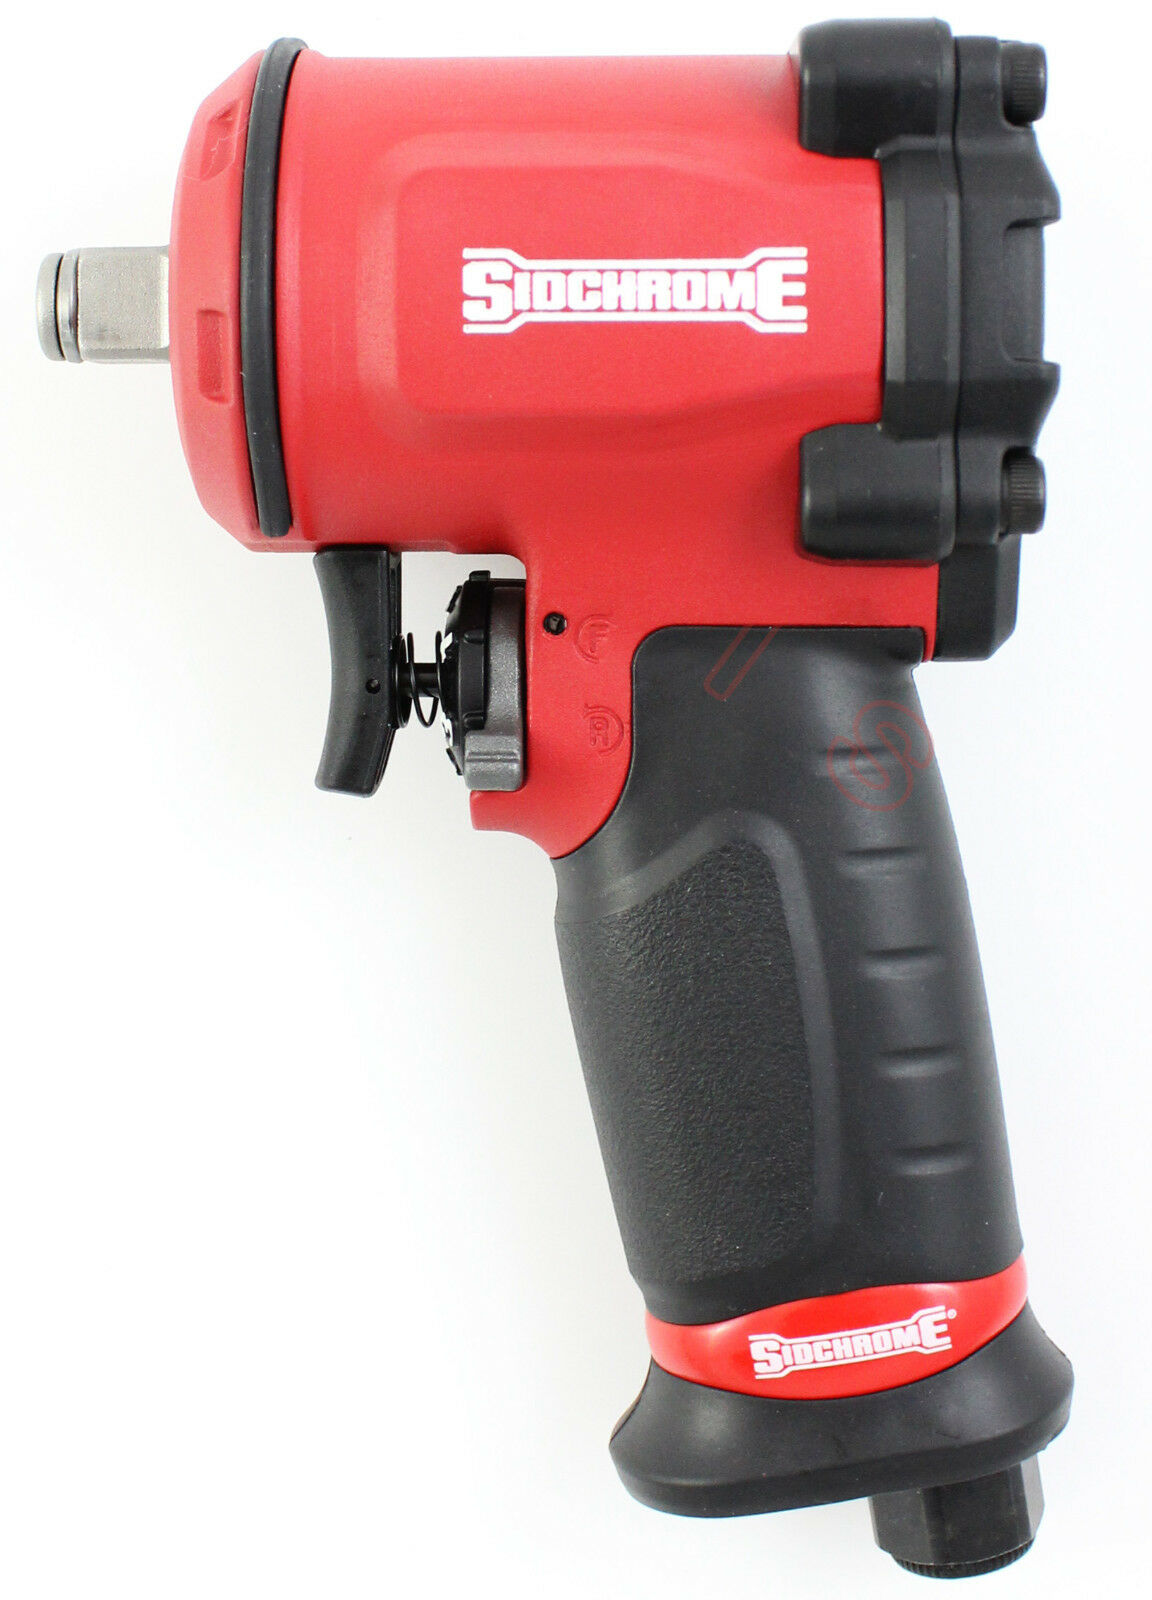 SIDCHROME 1 2  MINI IMPACT WRENCH TRADE QUALITY TOOLS Compact HD GUN SPECIAL